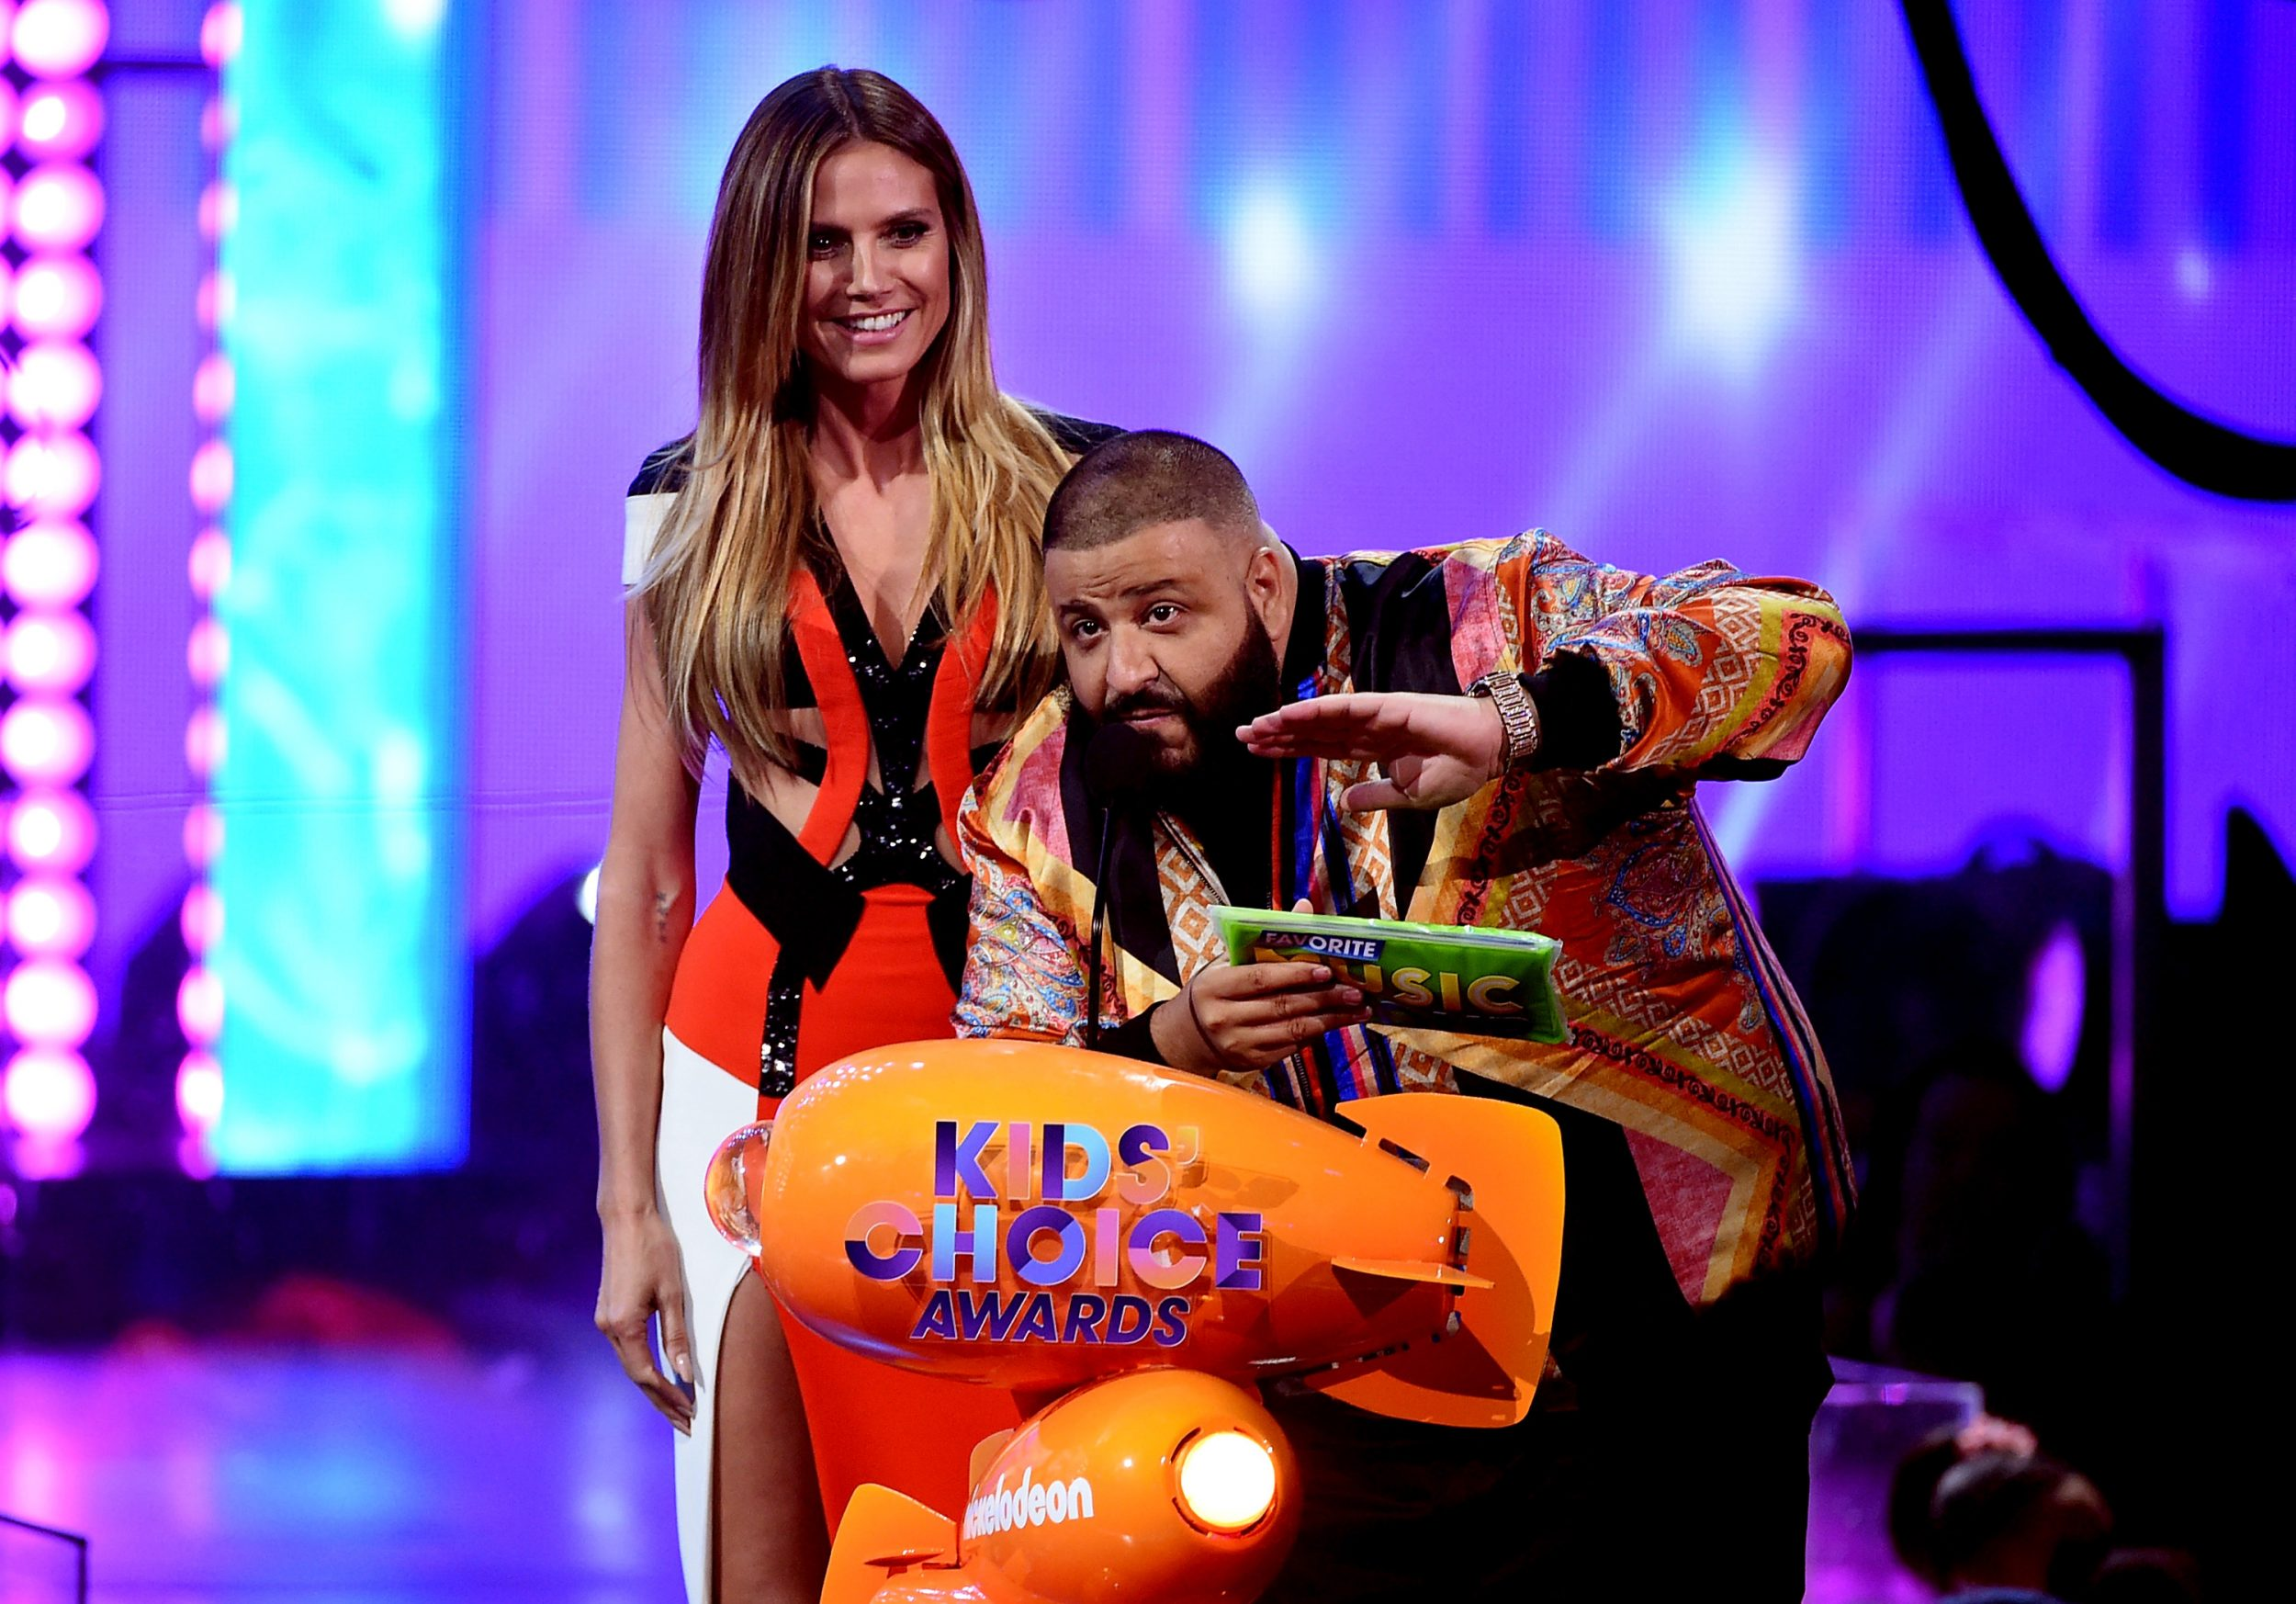 LOS ANGELES, CA - MARCH 11:  Model Heidi Klum (L) and DJ Khaled speak onstage at Nickelodeon's 2017 Kids' Choice Awards at USC Galen Center on March 11, 2017 in Los Angeles, California.  (Photo by Kevin Winter/Getty Images - Issued to Media by Nickelodeon)